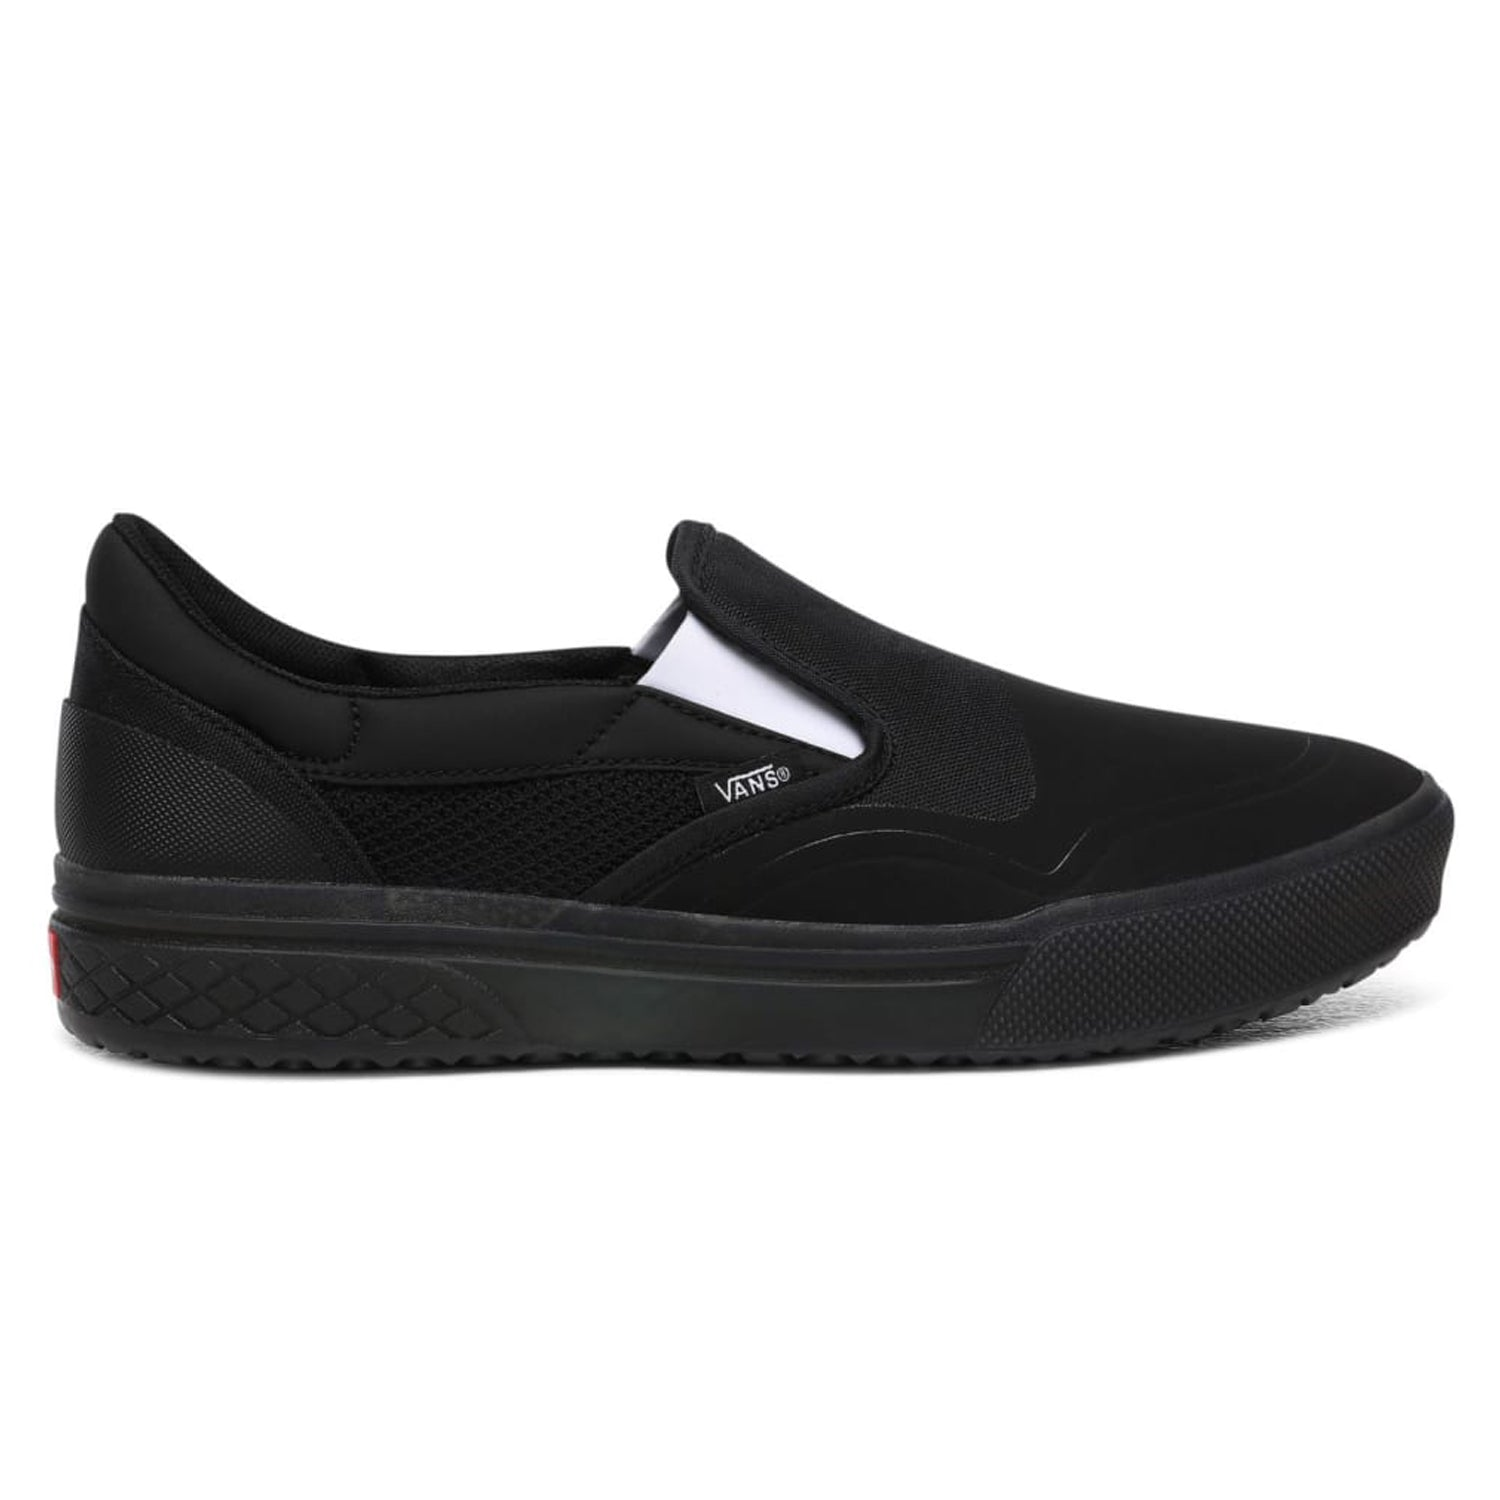 Vans Mod Slip-On Black/Smoke